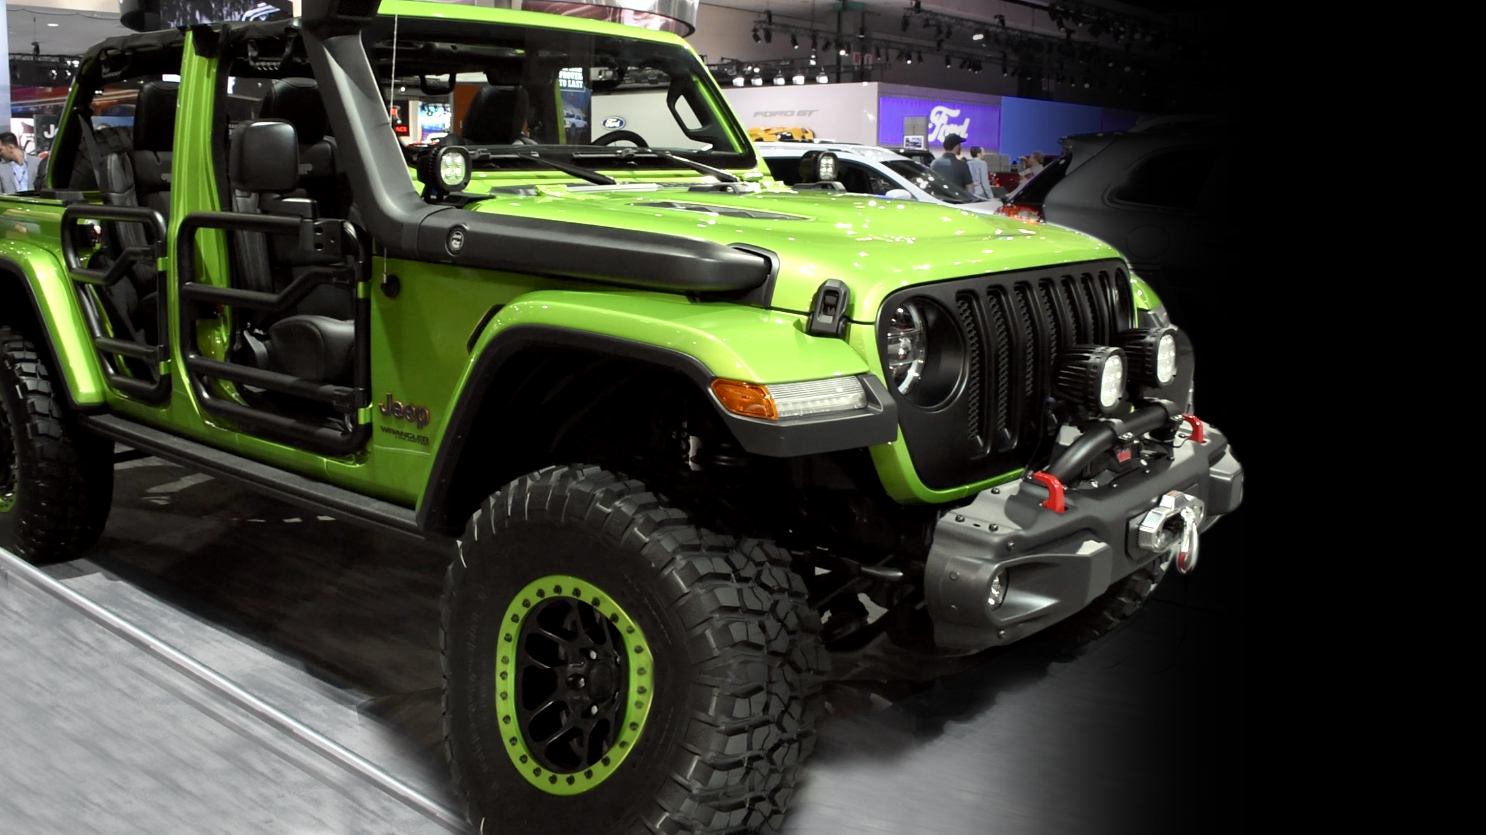 2018 Jeep Wrangler at the L.A. Auto Show